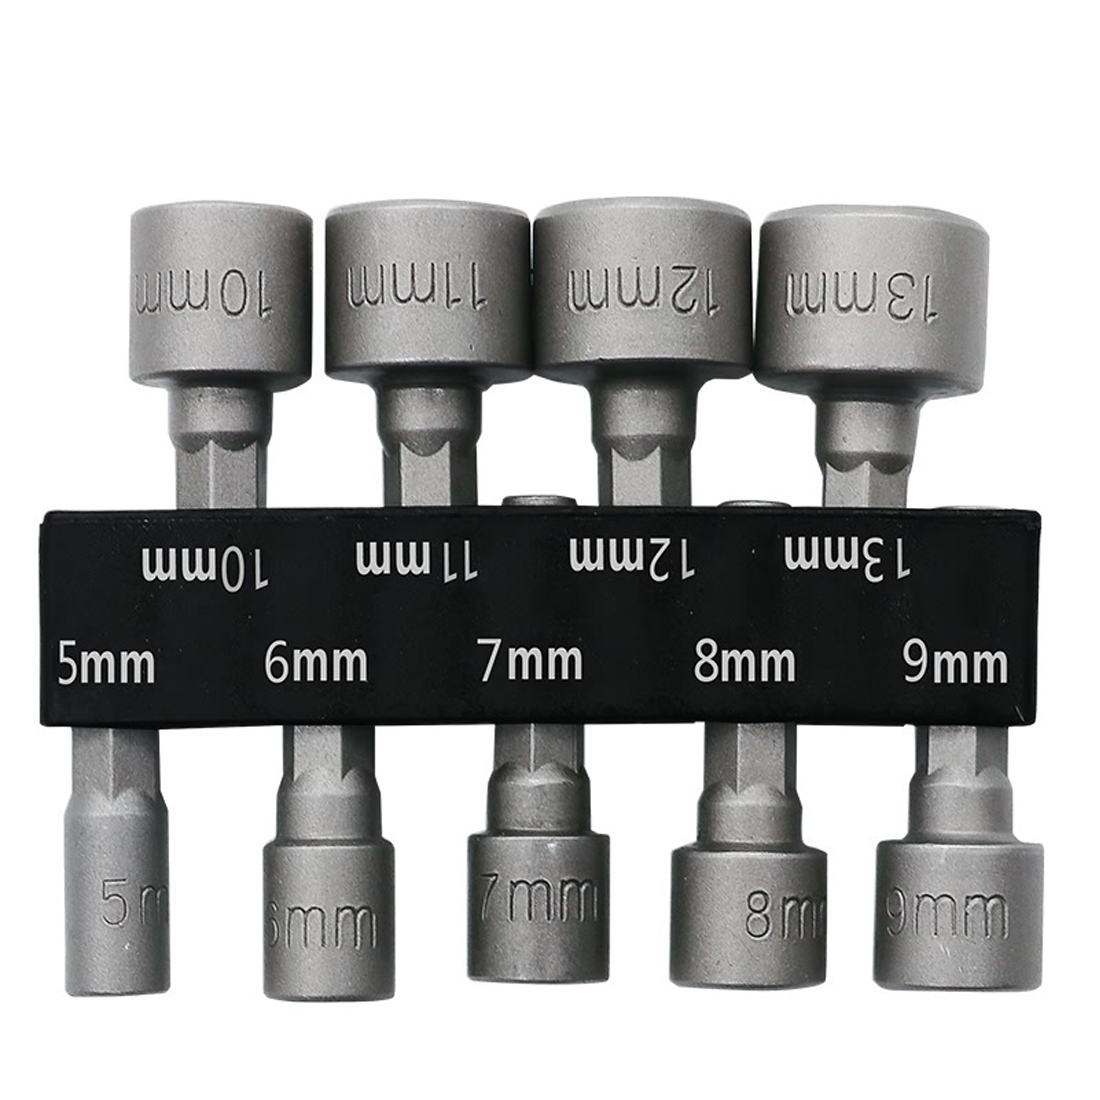 9pcs/set 5mm-13mm 1/4 Inch Hex Shank Socket Sleeve Nozzles Nut Driver Bit Set Drill Bit Adapter Hex Power Tools 10pcs professional magnetic nut driver set metric socket 1 4 hex power drill bits 6mm 15mm hex socket sleeve adapter power tool